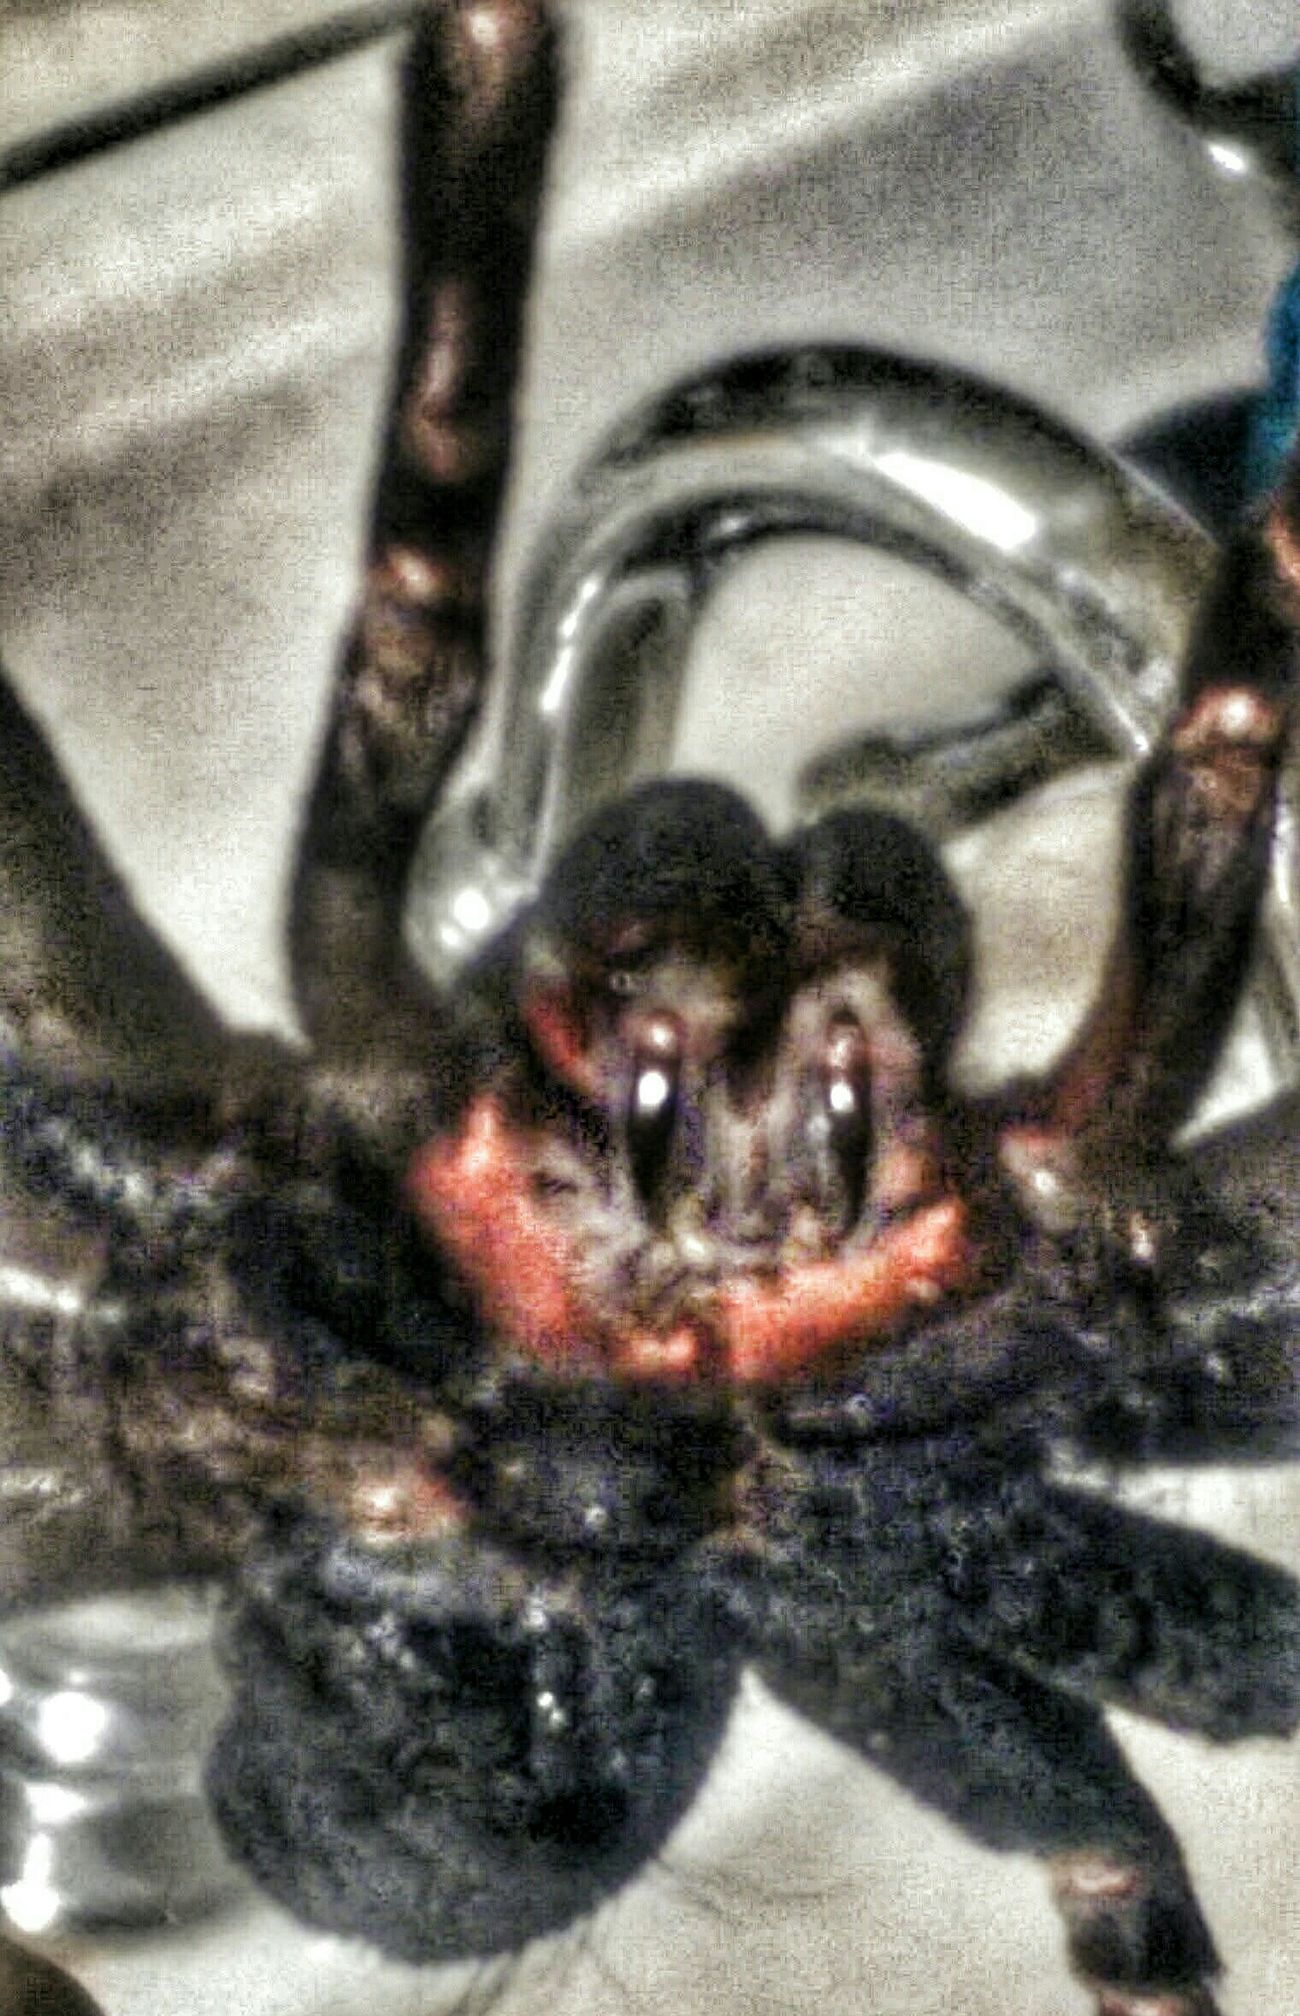 Attack Of The Macro Collection! Arachnipocalypse The Impurist EyeEm Animal Lover Tarantula Dead Things ArachnophobiaArachni-therapy https://youtu.be/VSnTkGqAT9M Happy Halloween